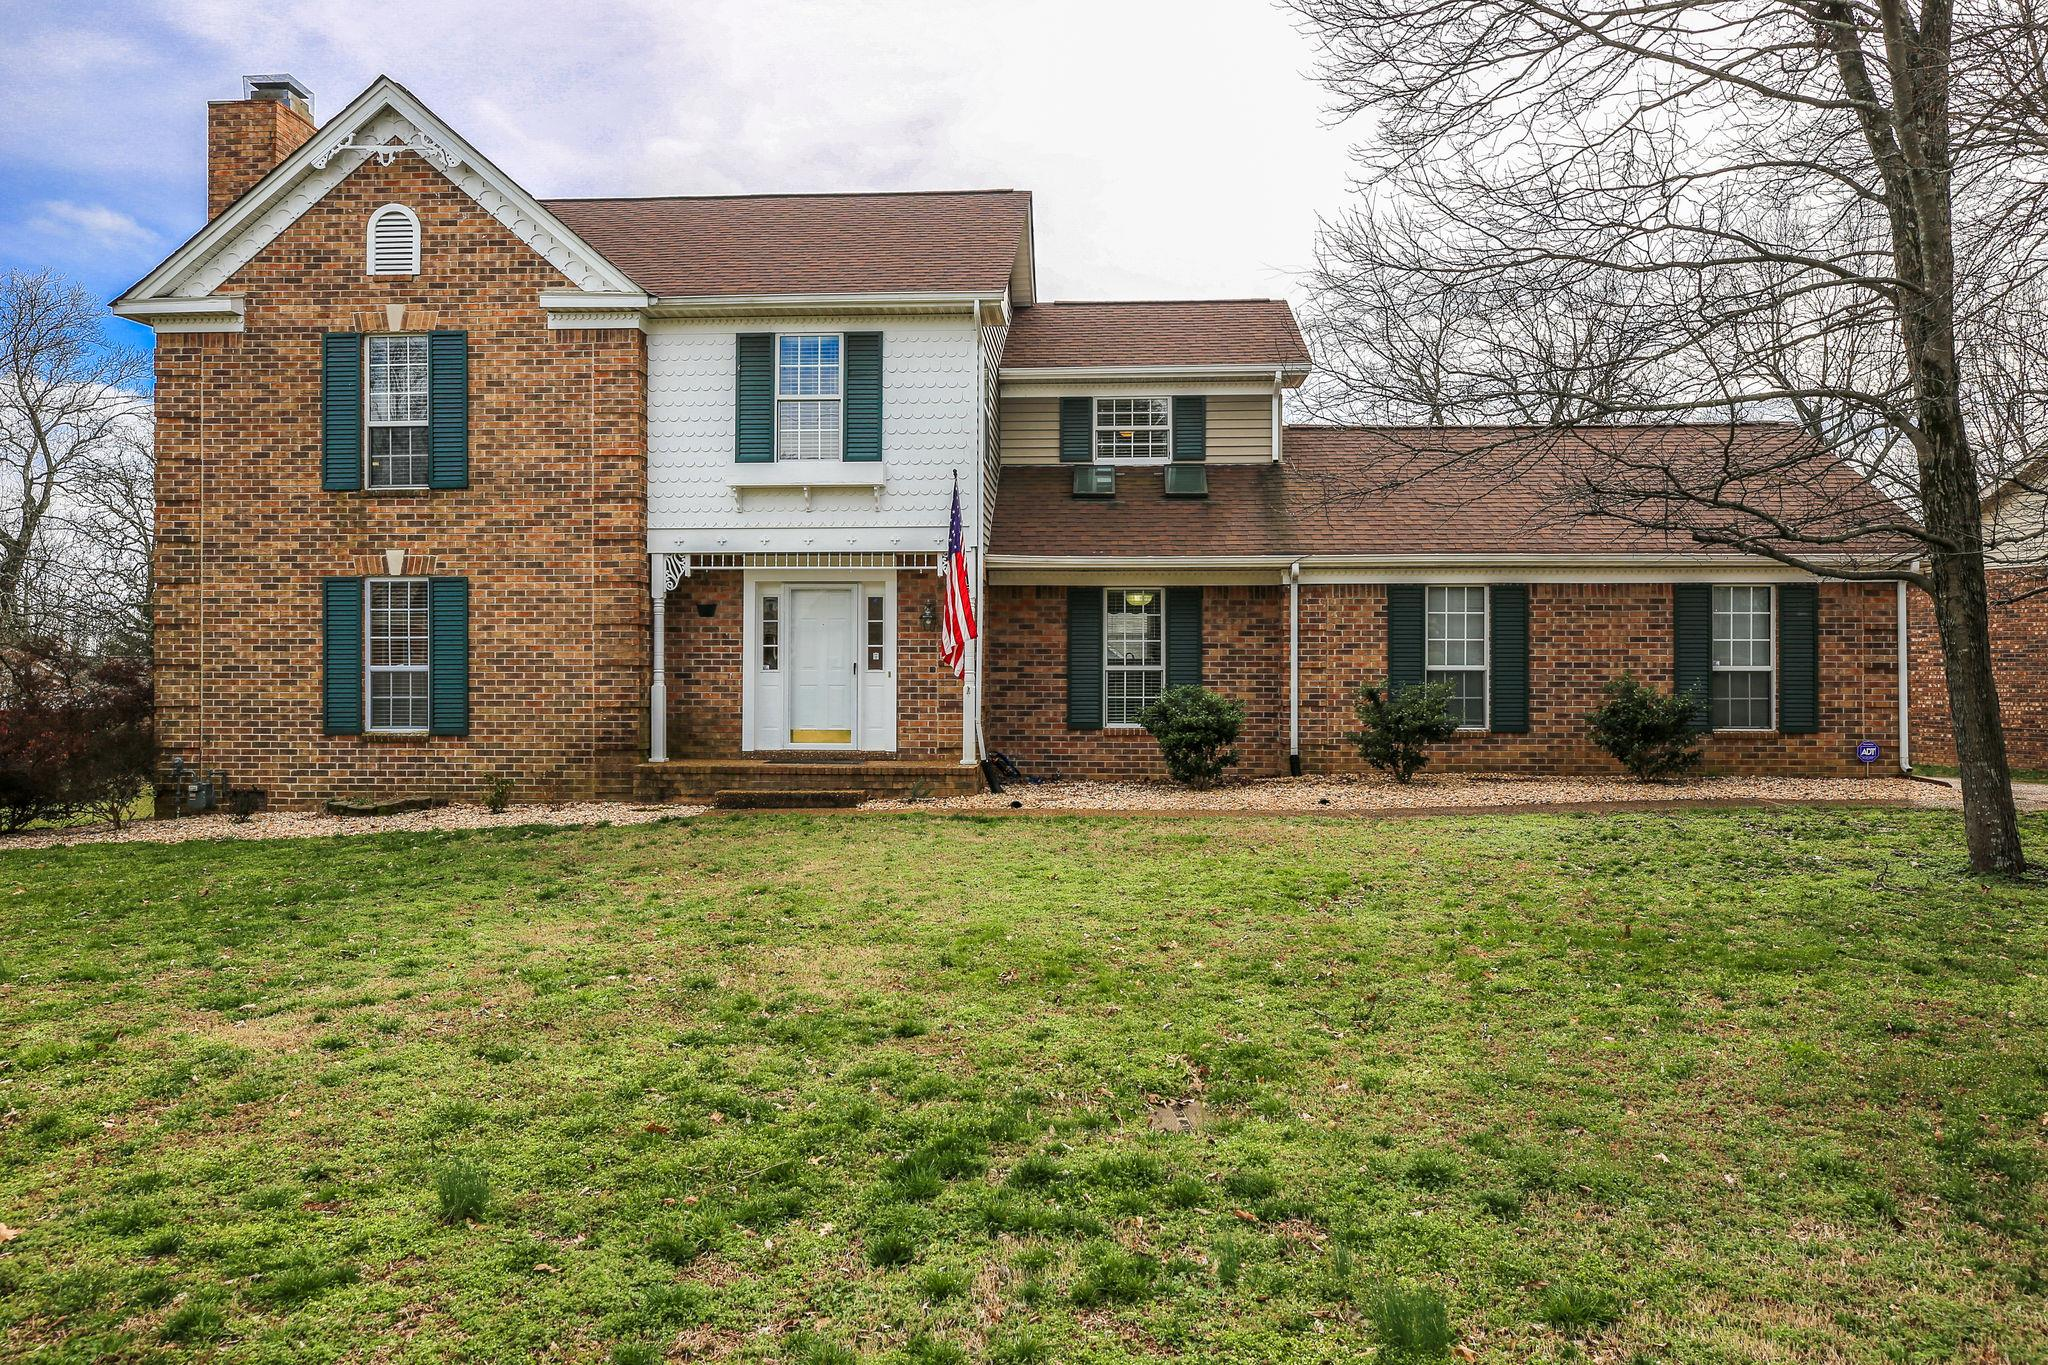 3905 Hillshire Dr, Nashville-Antioch in Davidson County County, TN 37013 Home for Sale